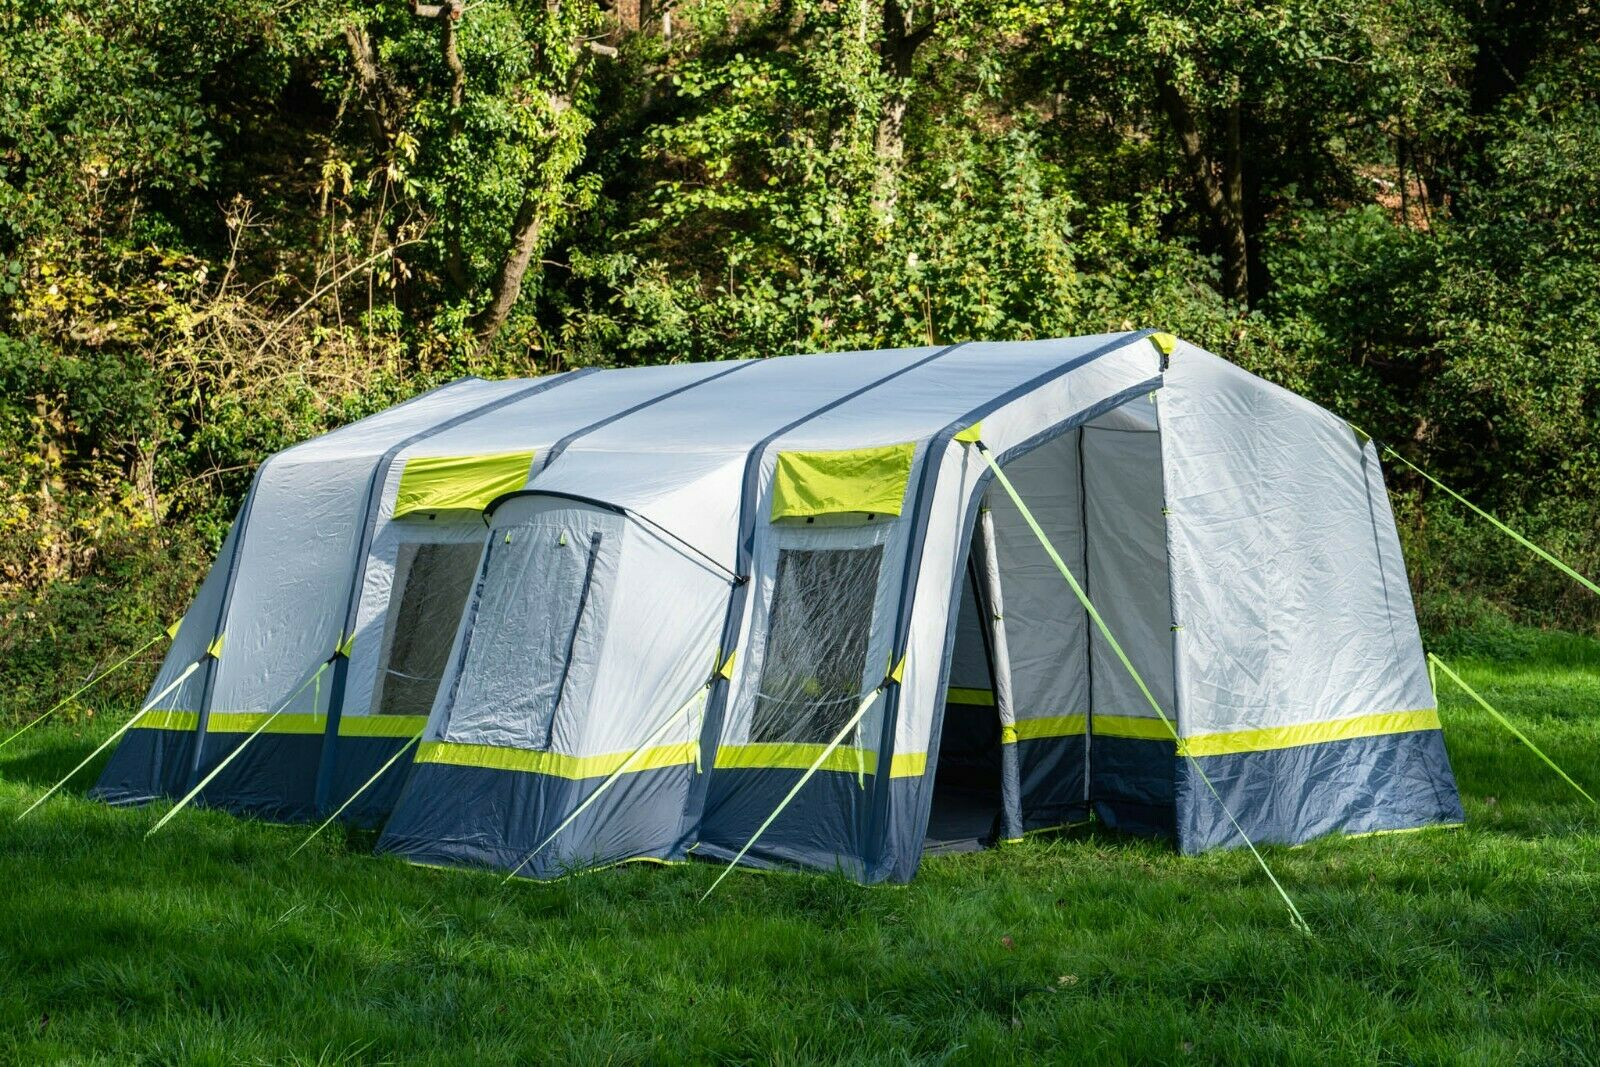 5 Berth Inflatable Air Tent Family 6.5m x 3.2m 5  Man Bedroom Inner OLPRO Home  enjoying your shopping